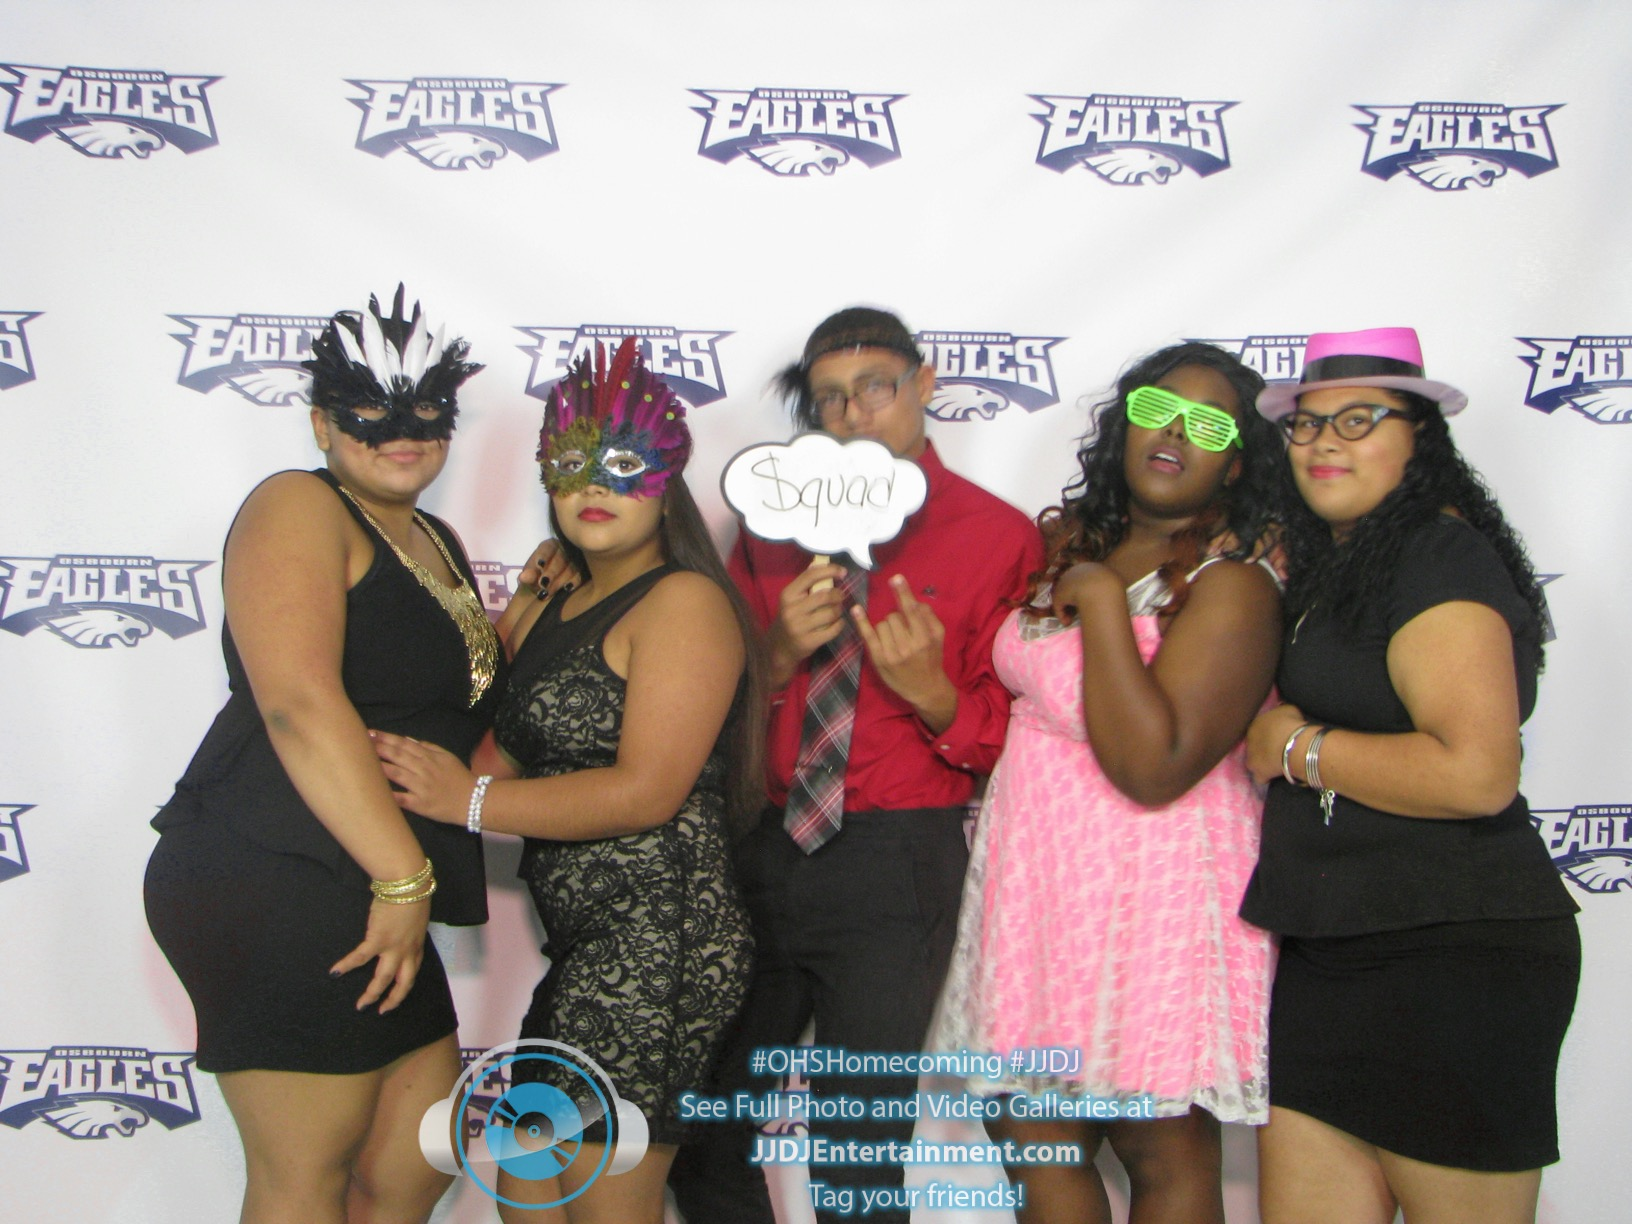 OHS 2014 Homecoming Photobooth -131